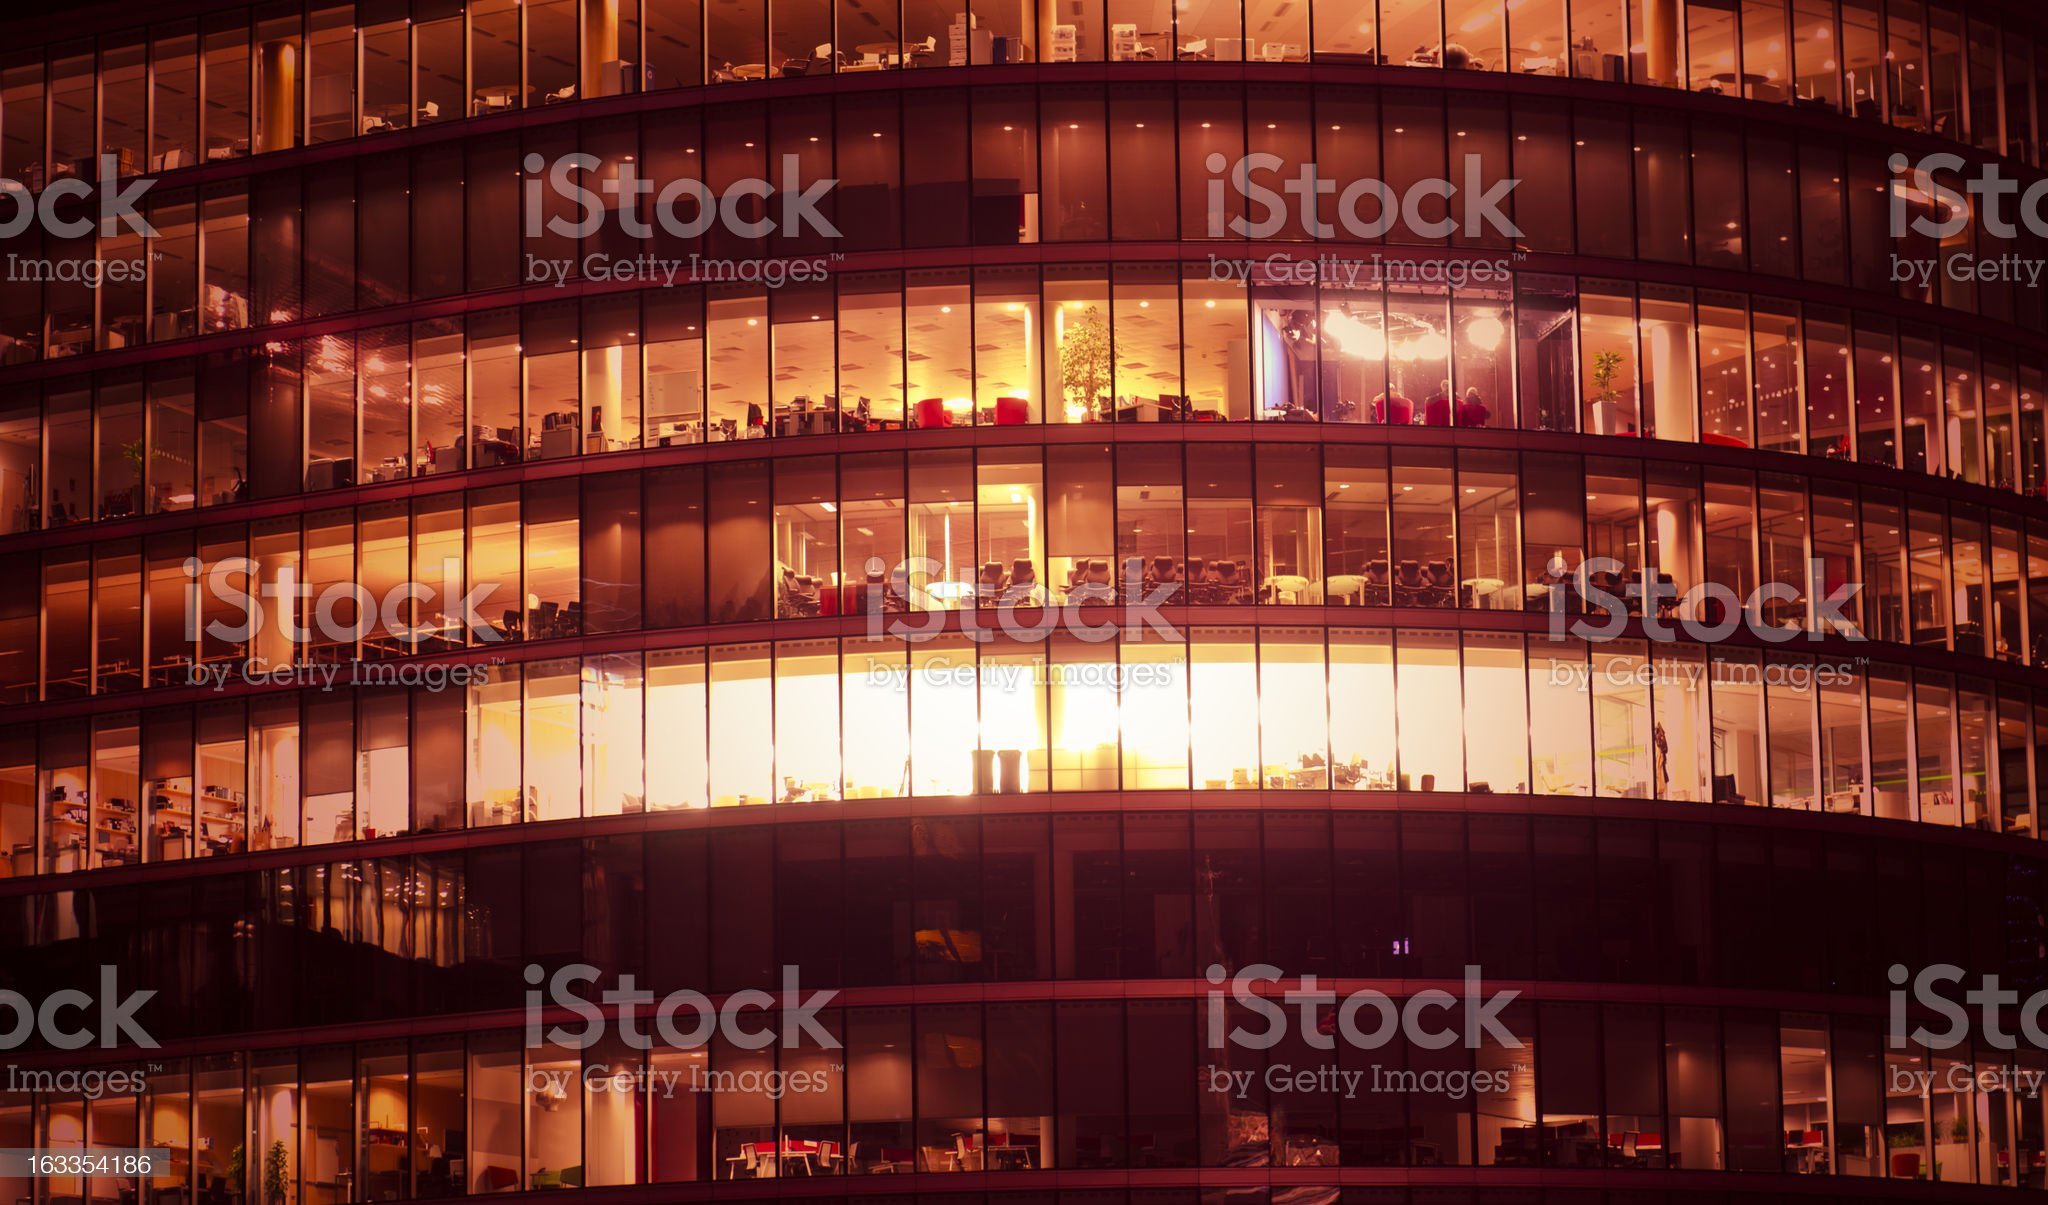 London abstract glass contemporary architecture royalty-free stock photo